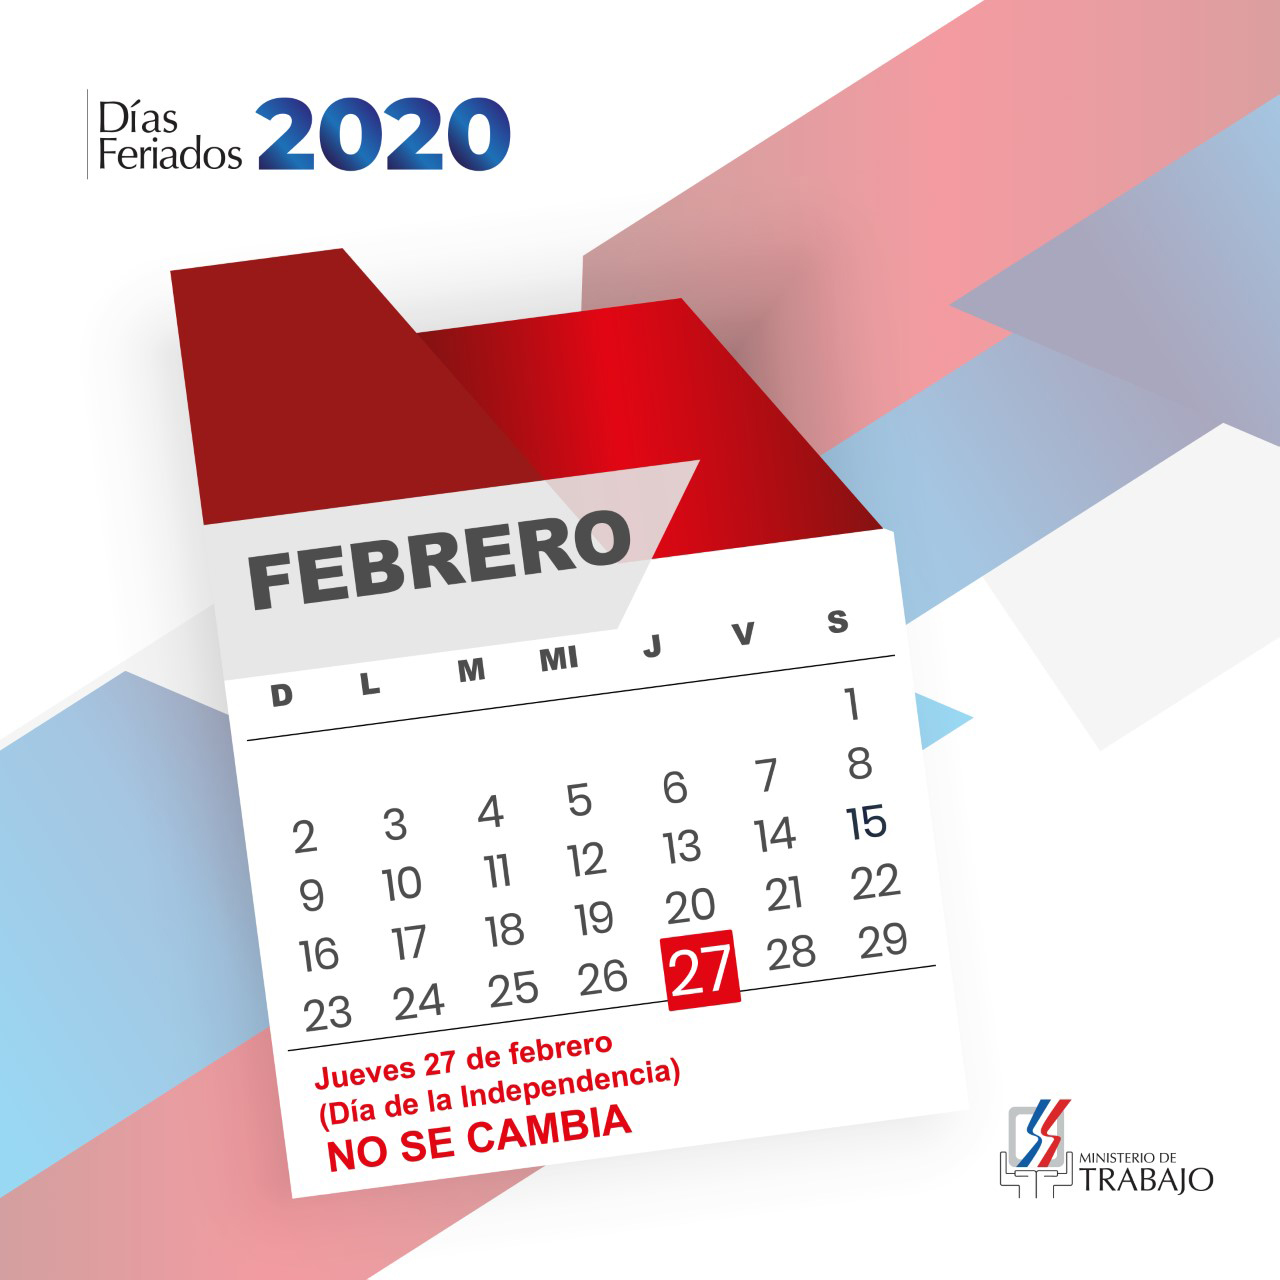 "27 de febrero ""Día de la Independencia"" es no laborable"